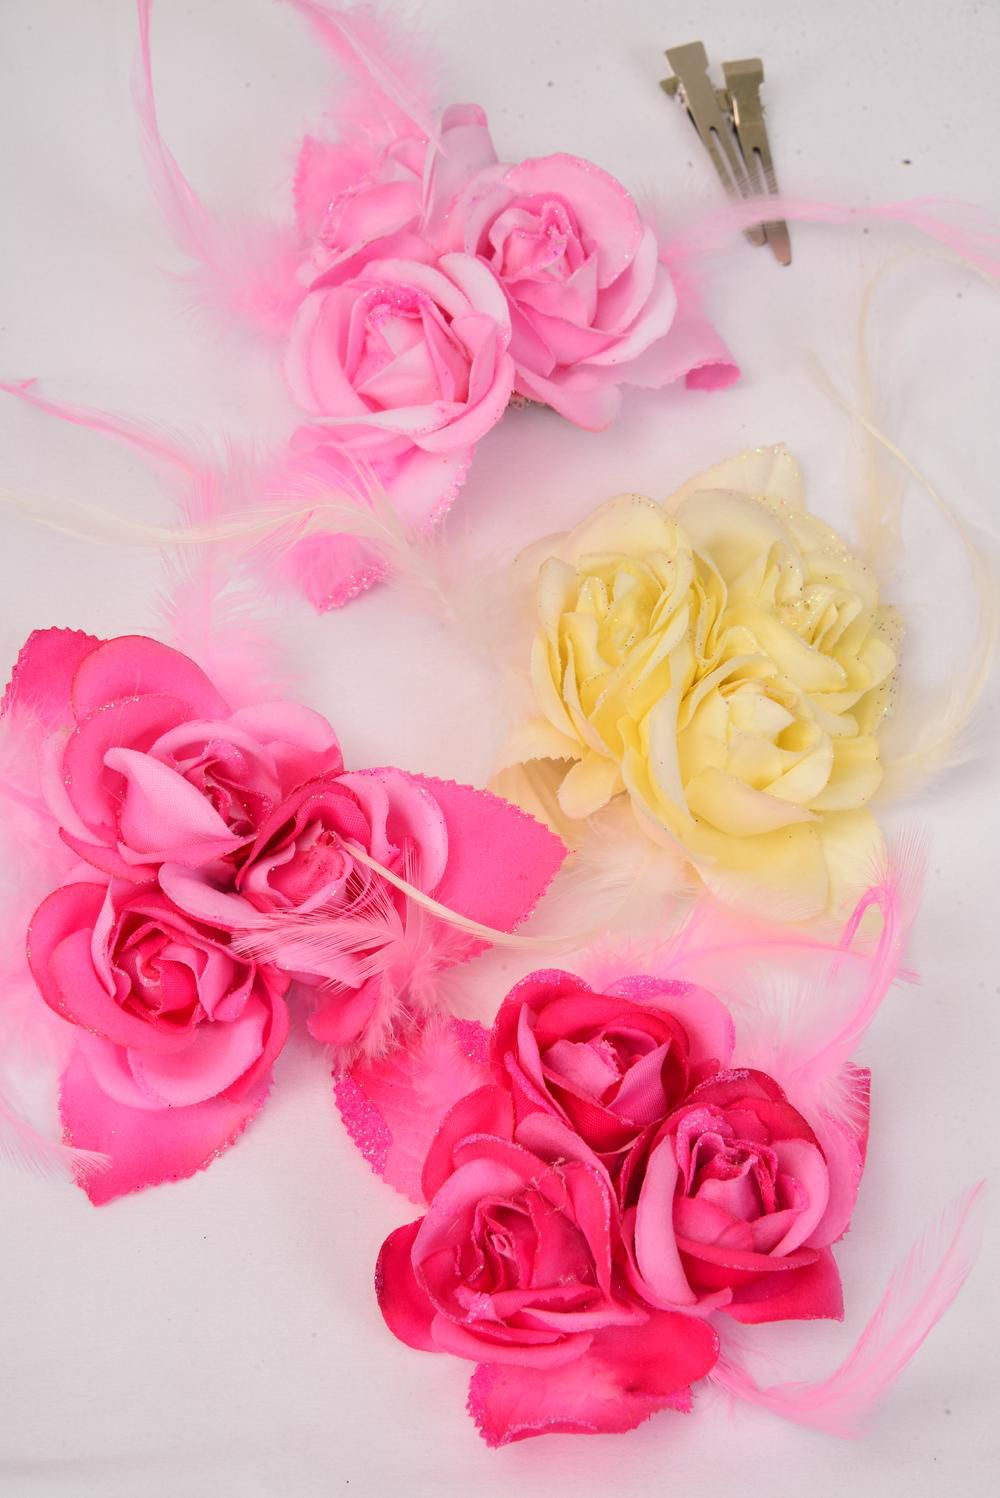 "Silk Flower 3 Roses Feathers Pink Mix Alligator Clip/DZ **Pink Mix** Size-5"" Wide,Alligator Clip & Brooch,3 of each Color Mix,Display Card & UPC Code,W Clear Box -"